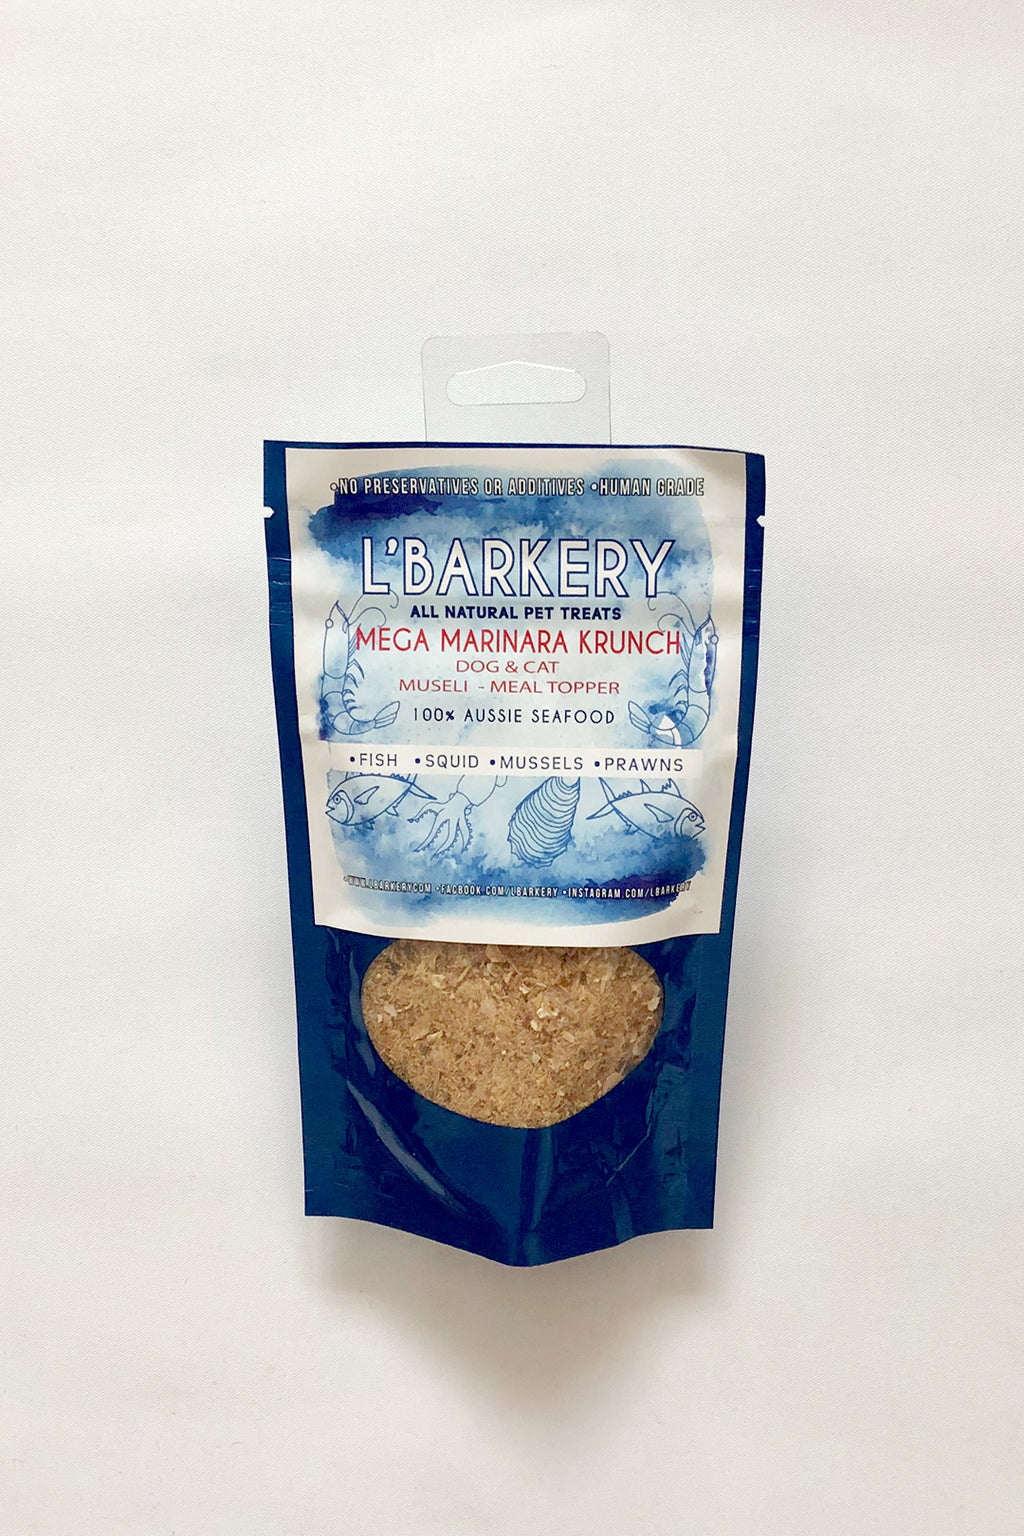 L'Barkery Marinara Krunch Online - Healthy Natural Pet Treats online Australia Design My Digs